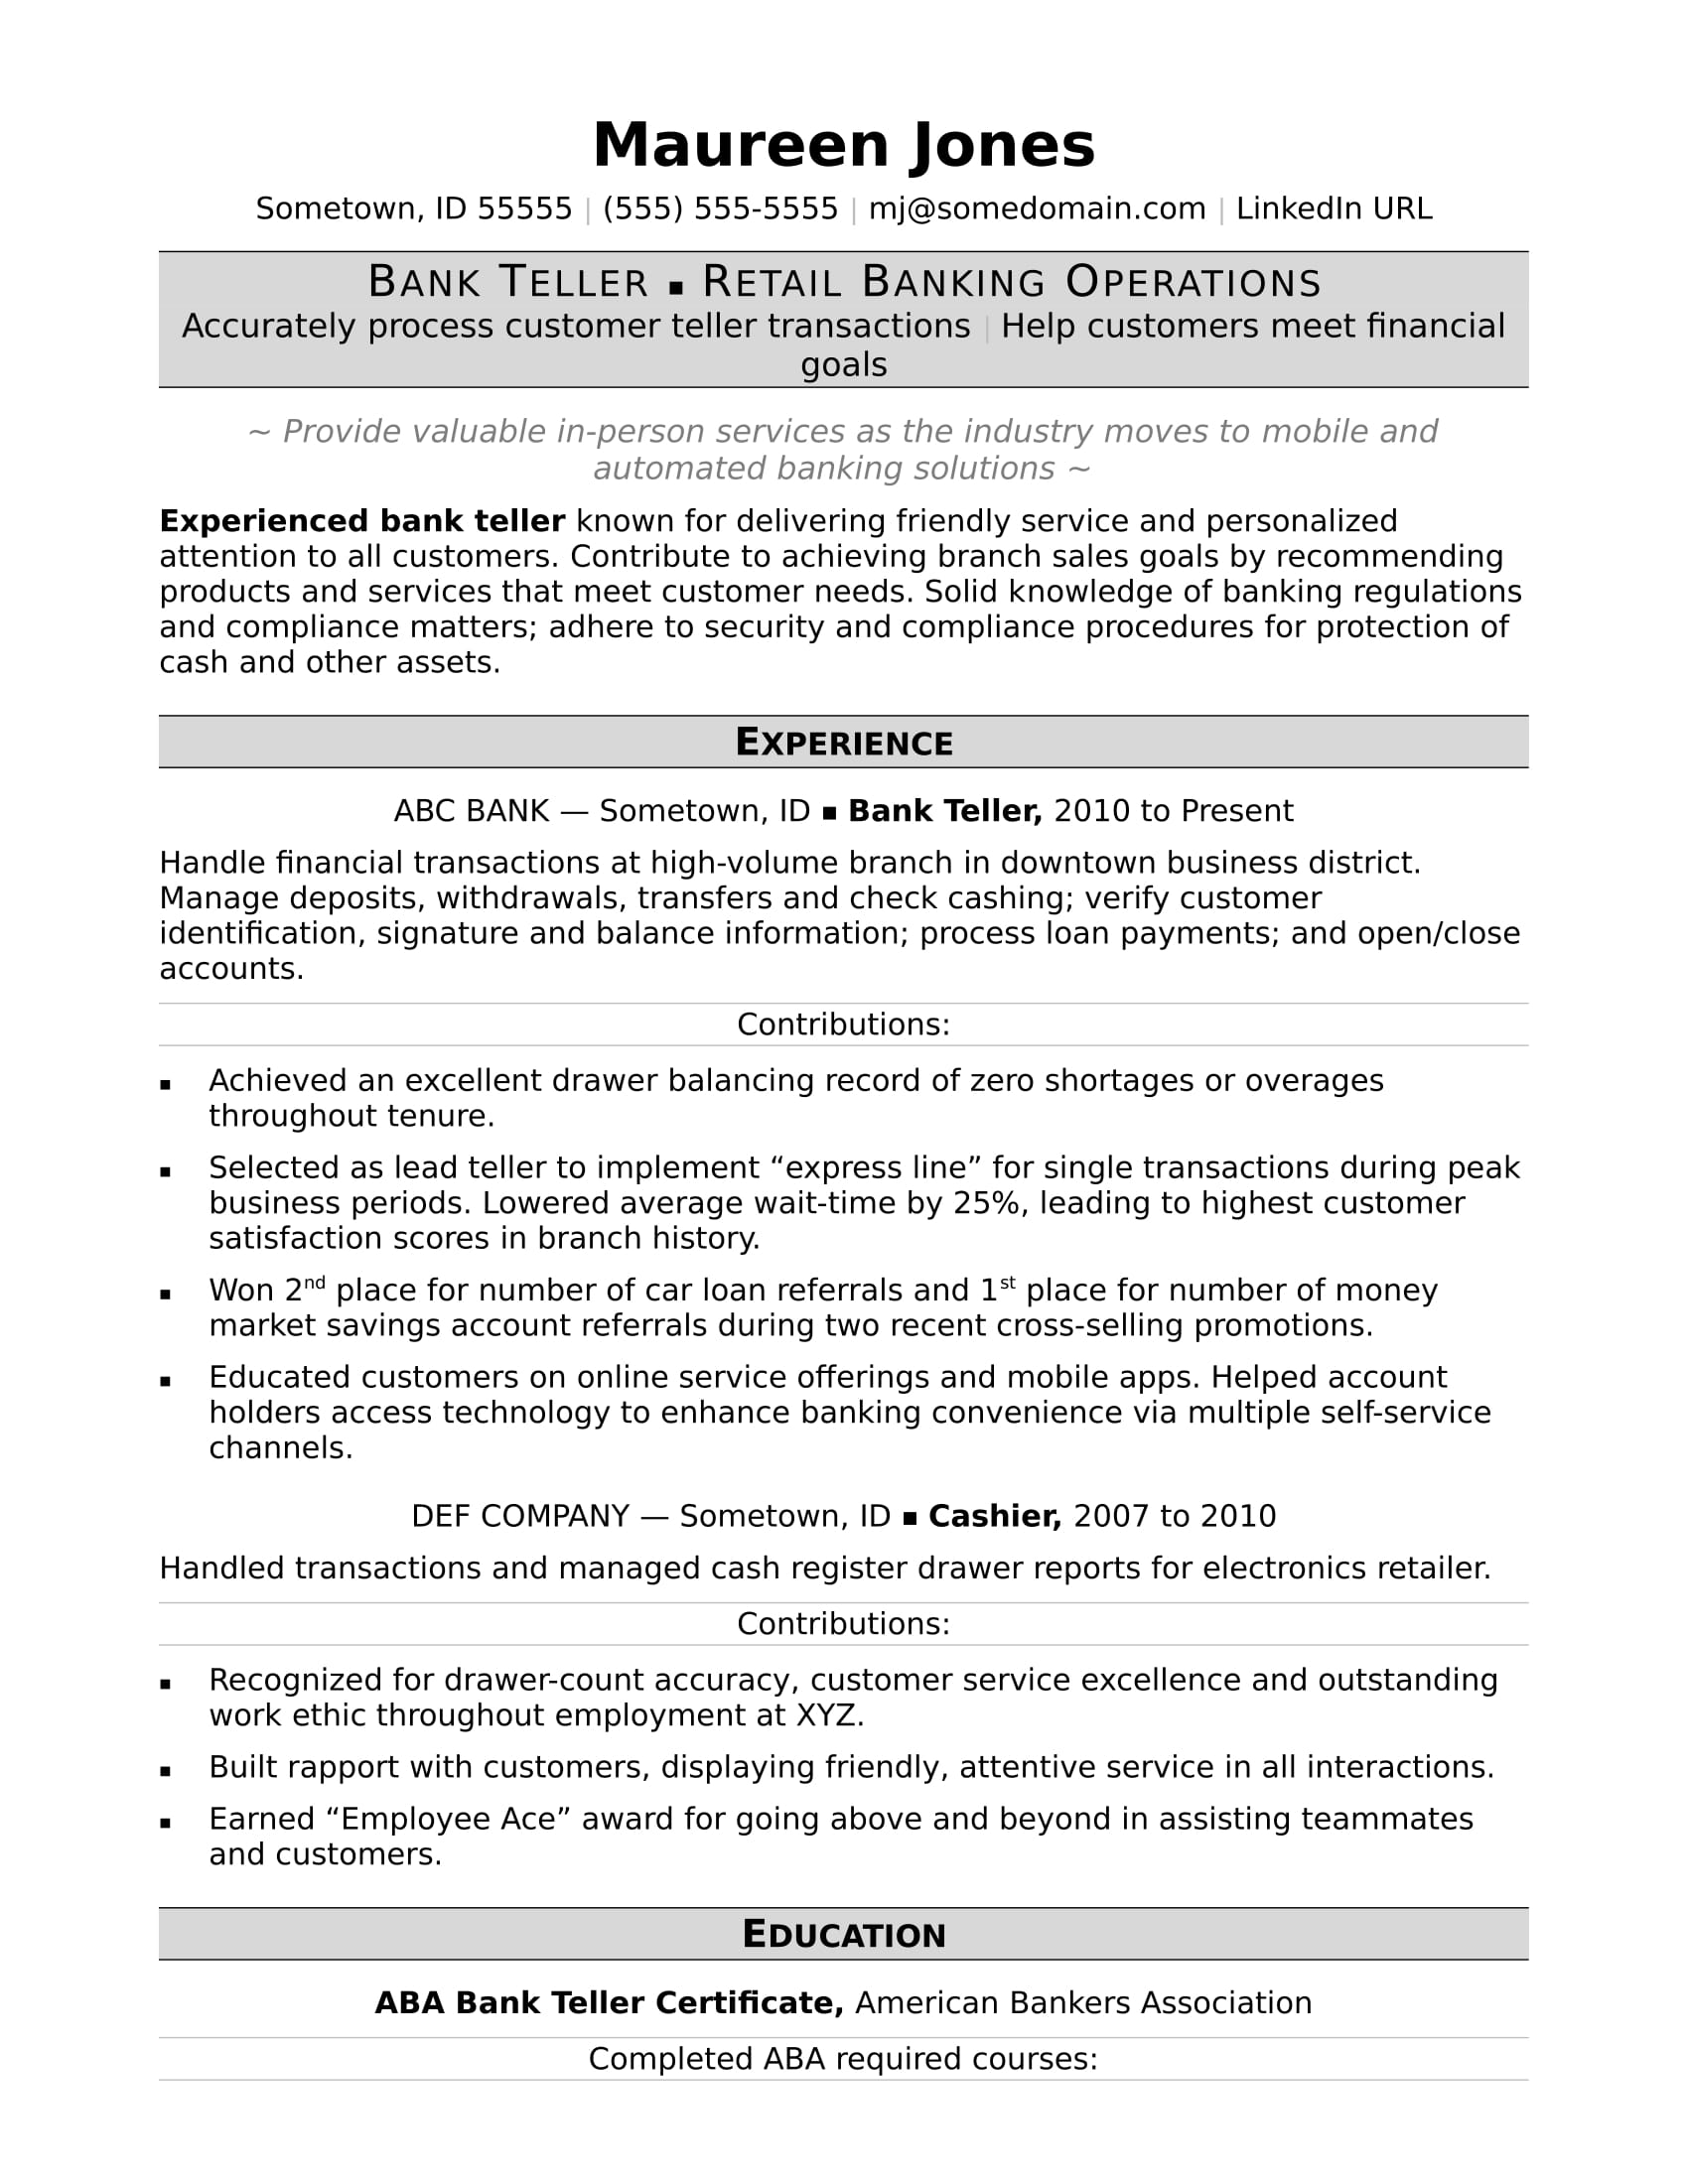 Bank teller resume sample monster bank teller resume sample yelopaper Gallery